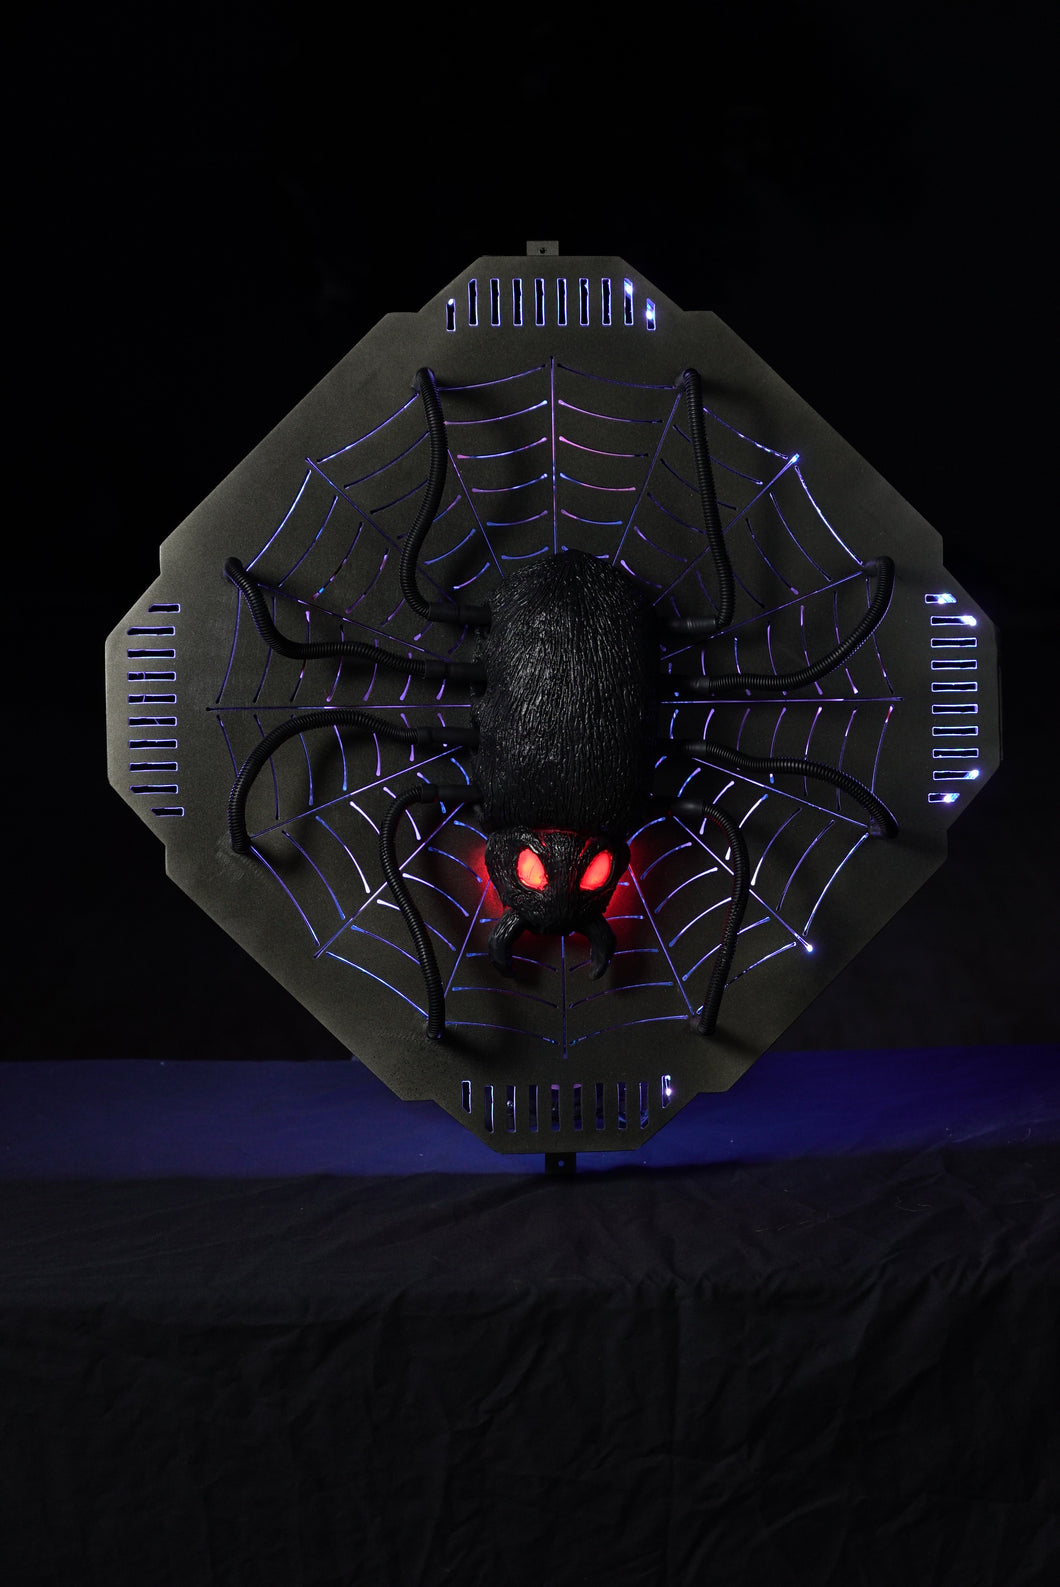 Spider's Secret Escape Room Puzzle